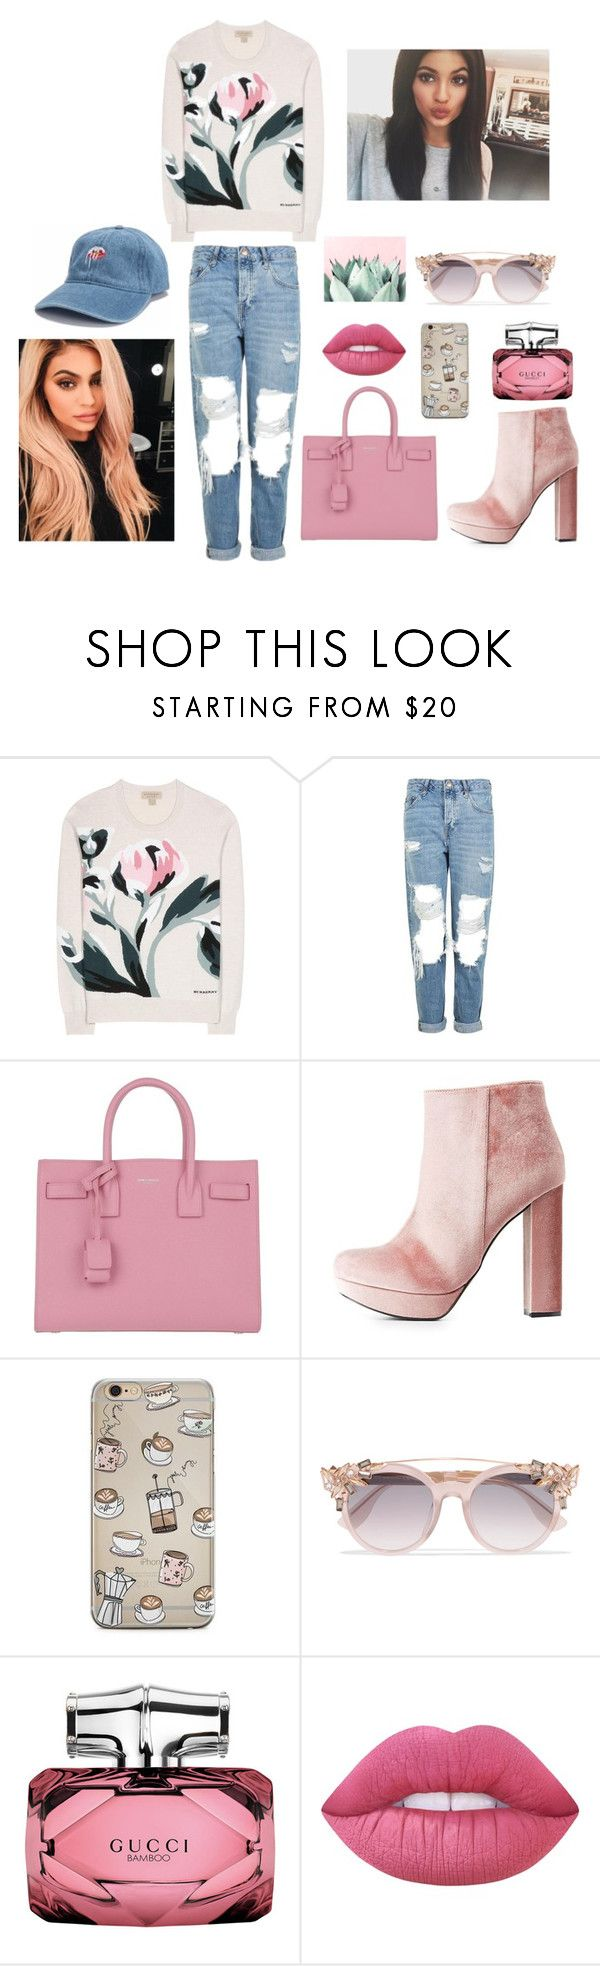 """""""kylie jenner"""" by mihan22 on Polyvore featuring Burberry, Topshop, Yves Saint Laurent, Charlotte Russe, Jimmy Choo, Gucci, Lime Crime and Justin Bieber"""